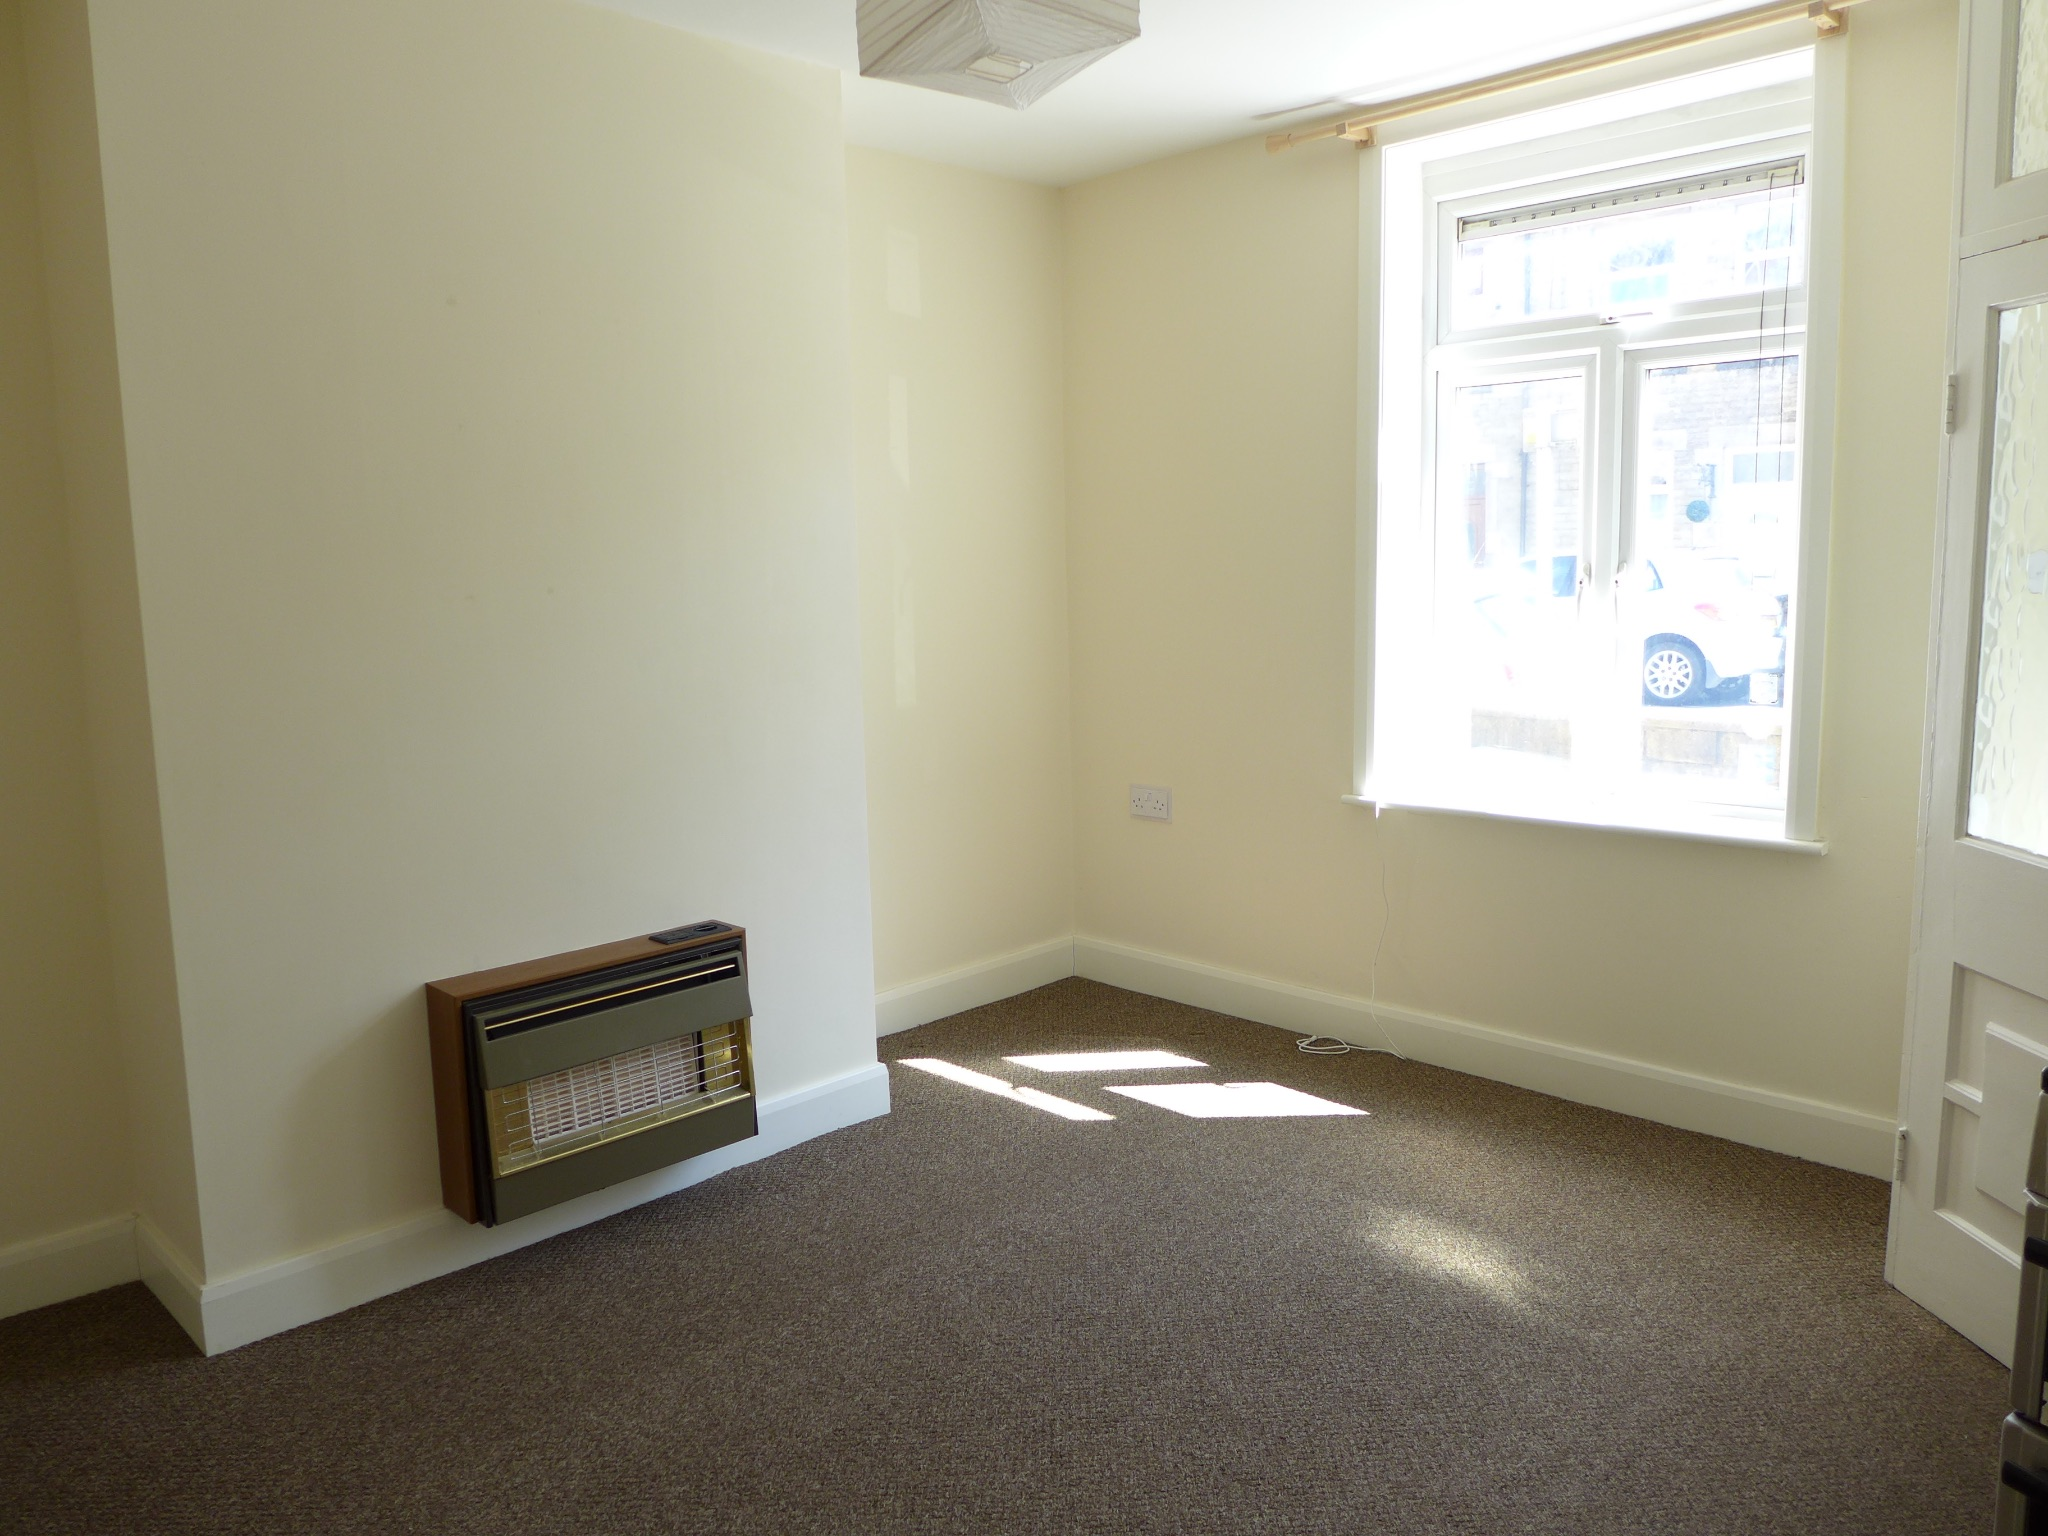 3 bedroom mid terraced house For Sale in Todmorden - Photograph 3.